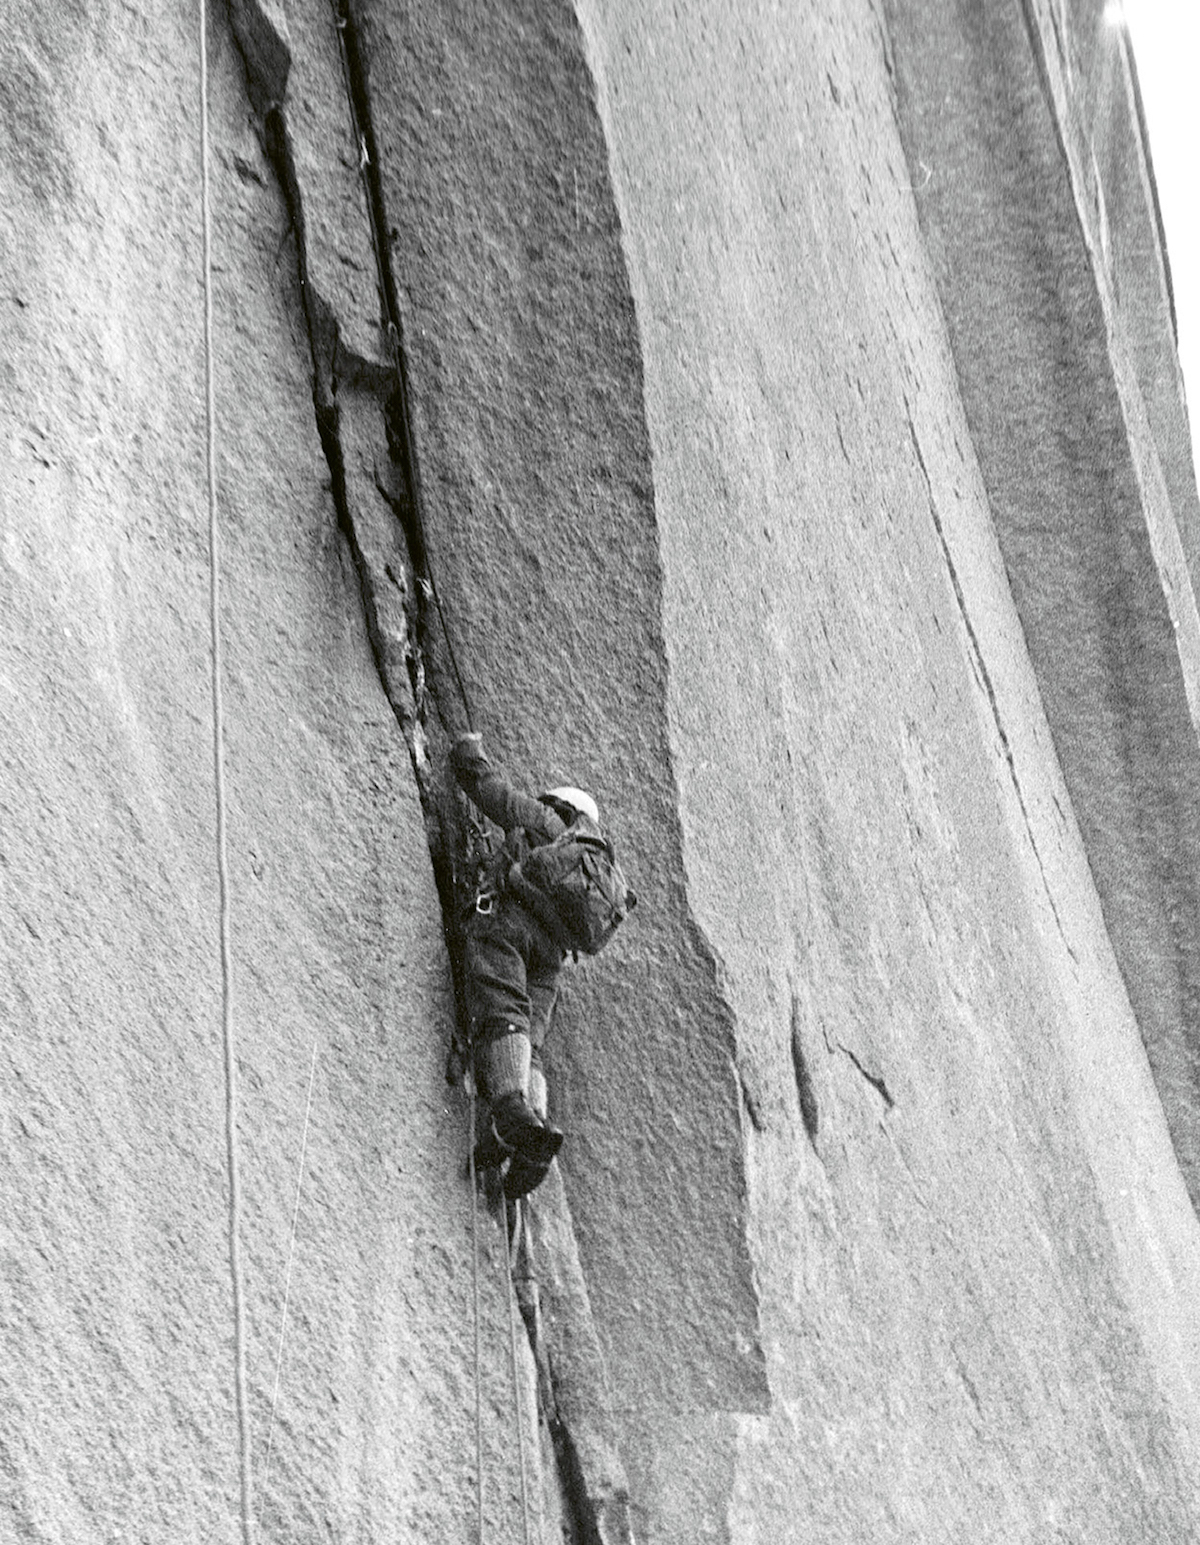 Auger on the 1966 first ascent of University Wall in Squamish. [Photo] Tim Auger collection